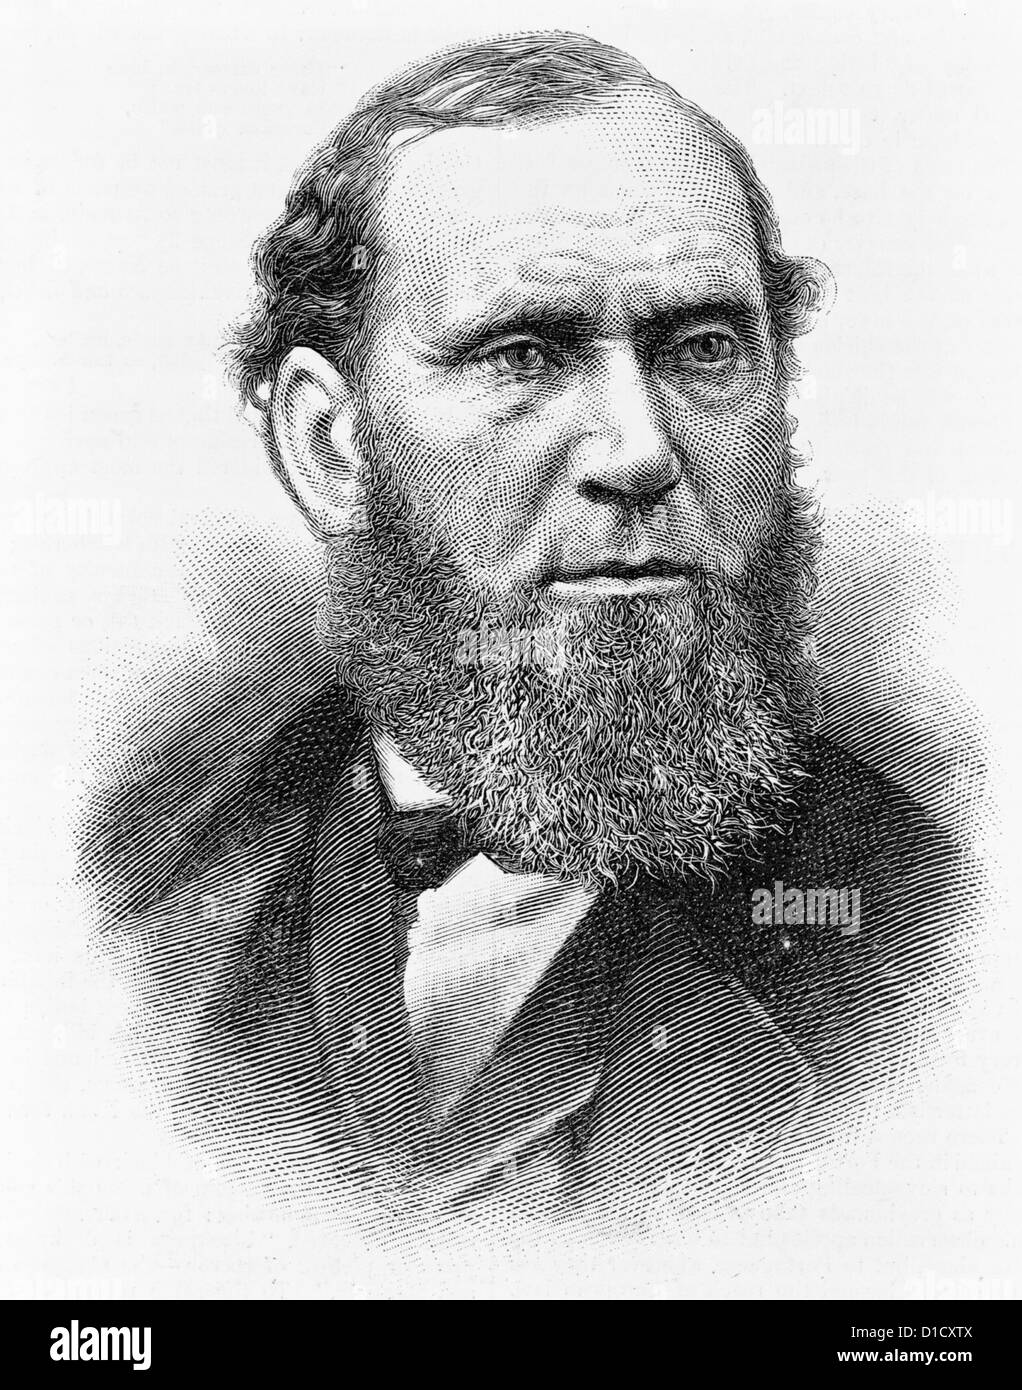 Allan Pinkerton, head-and-shoulders portrait, facing slightly right, circa 1884 - Stock Image